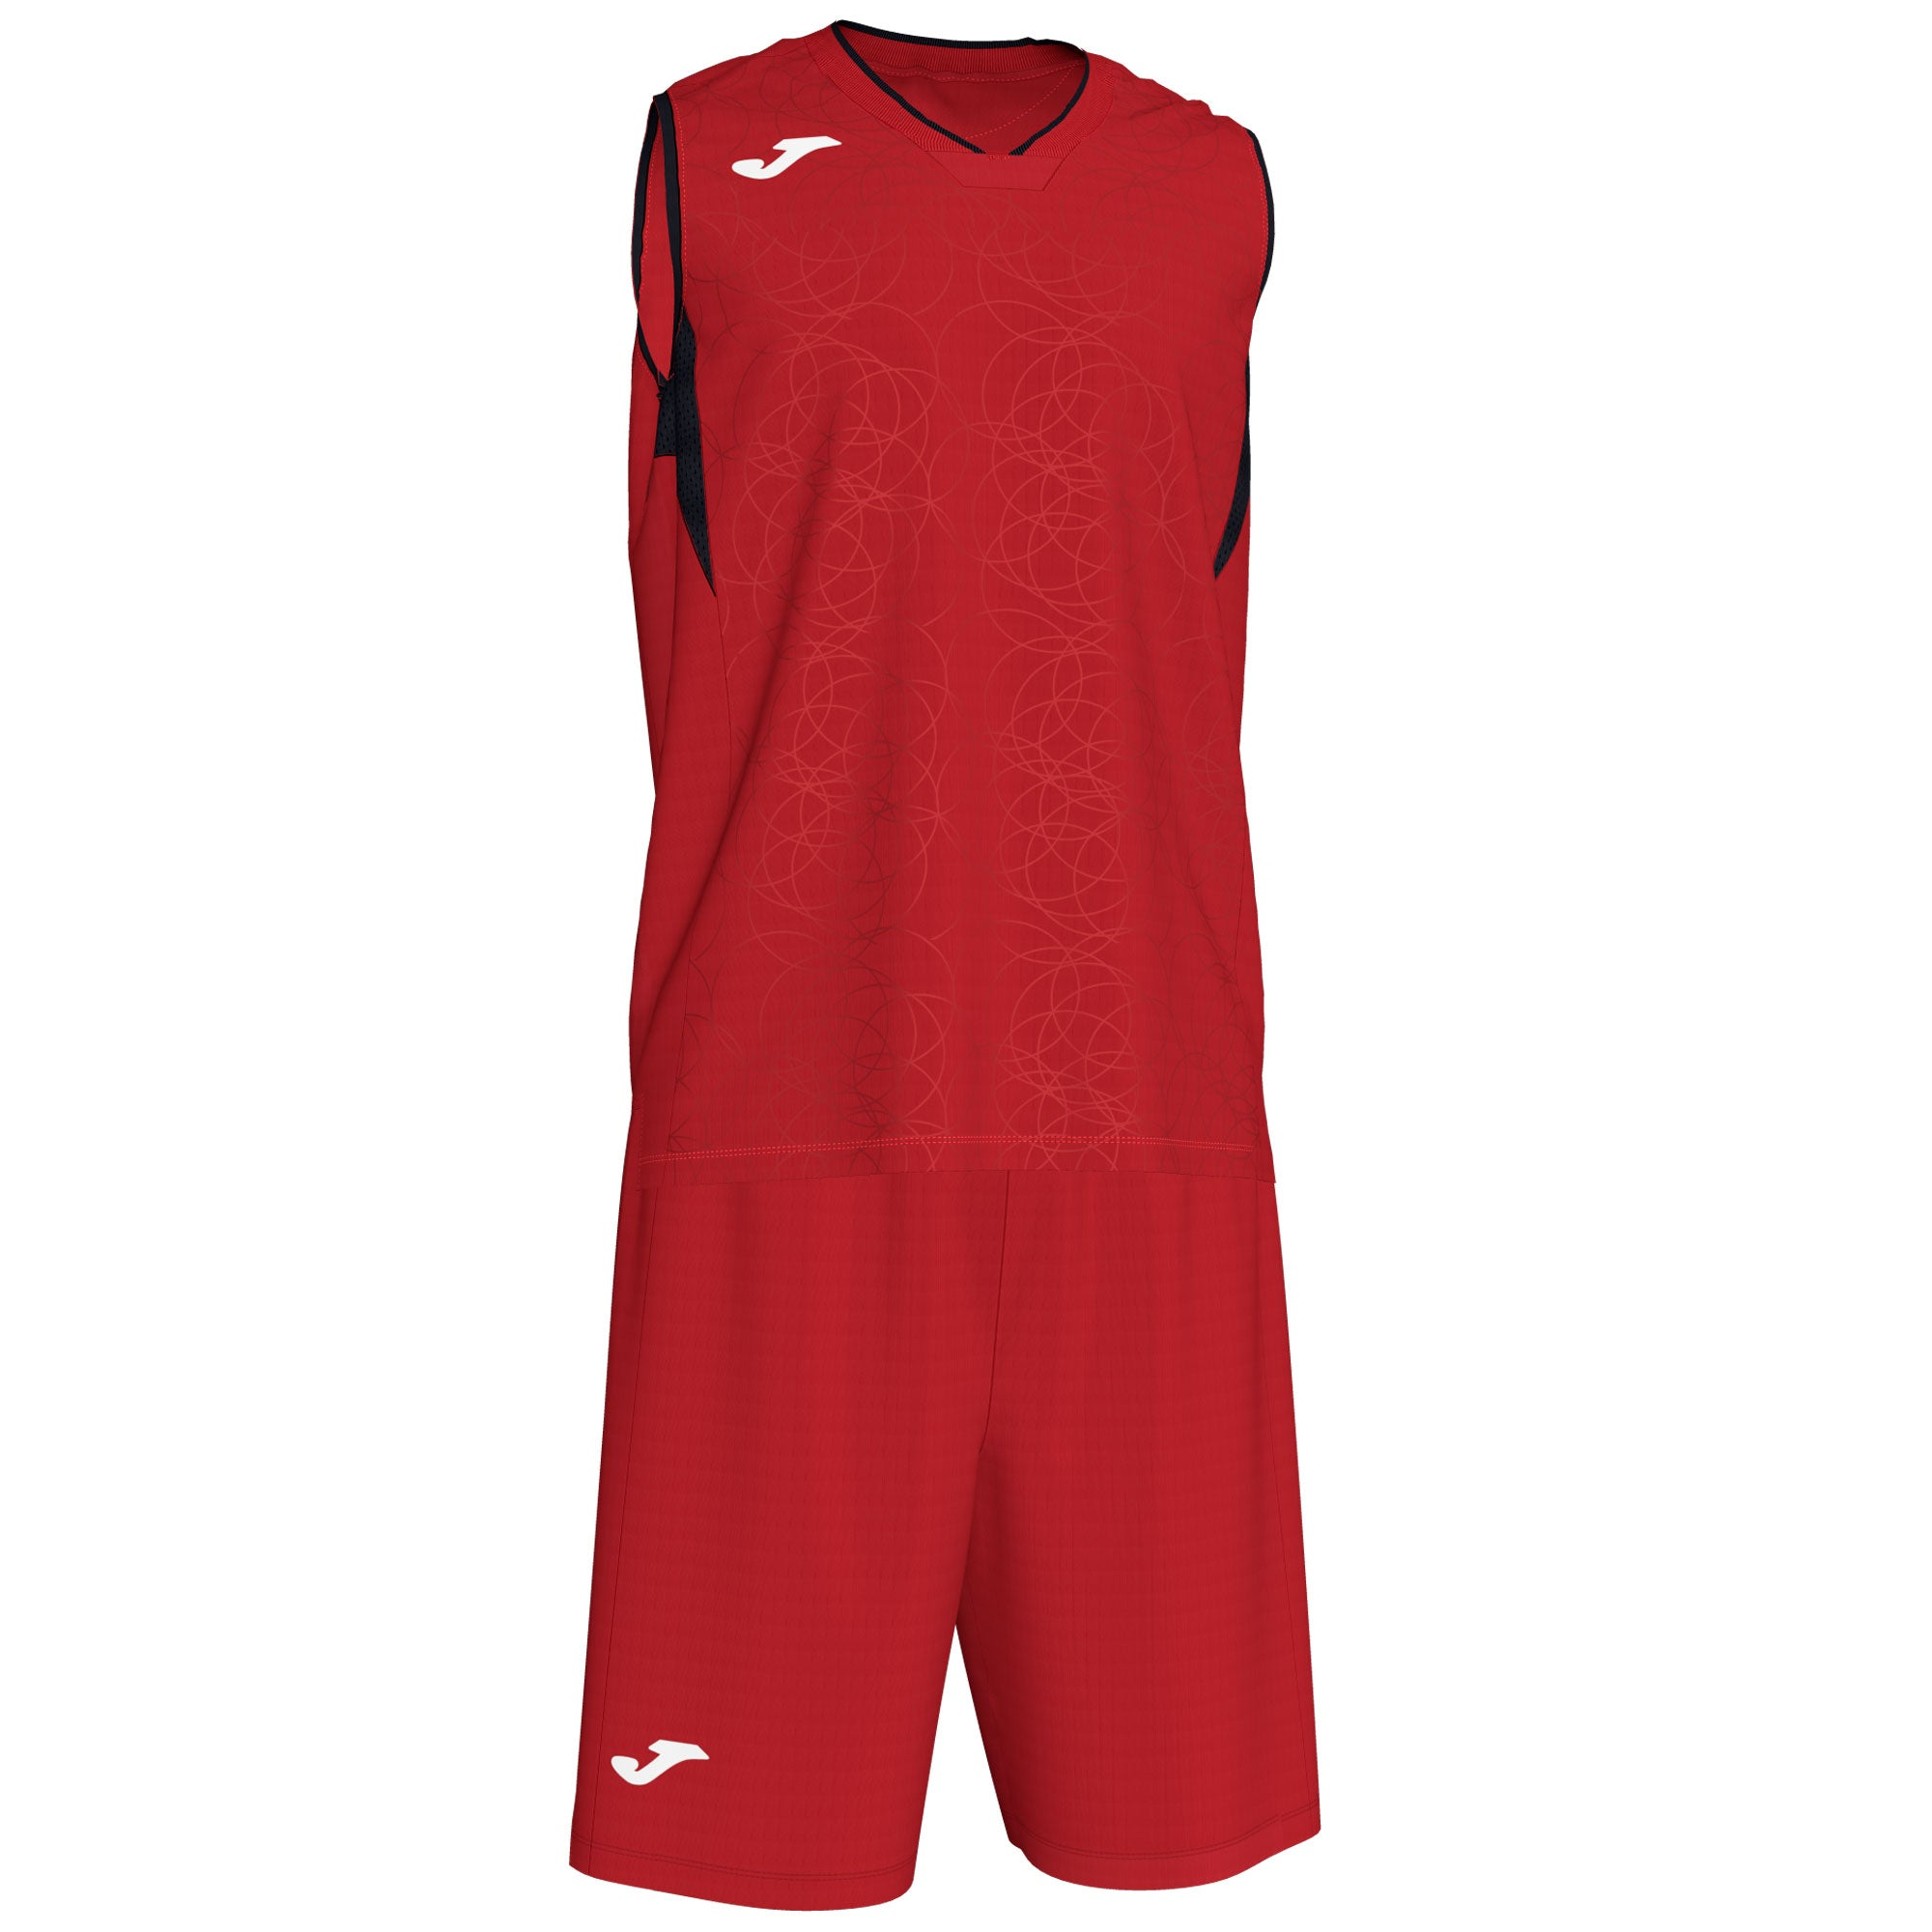 Teamwear - Joma Campus Kit - Red/Black - JO-101373-601